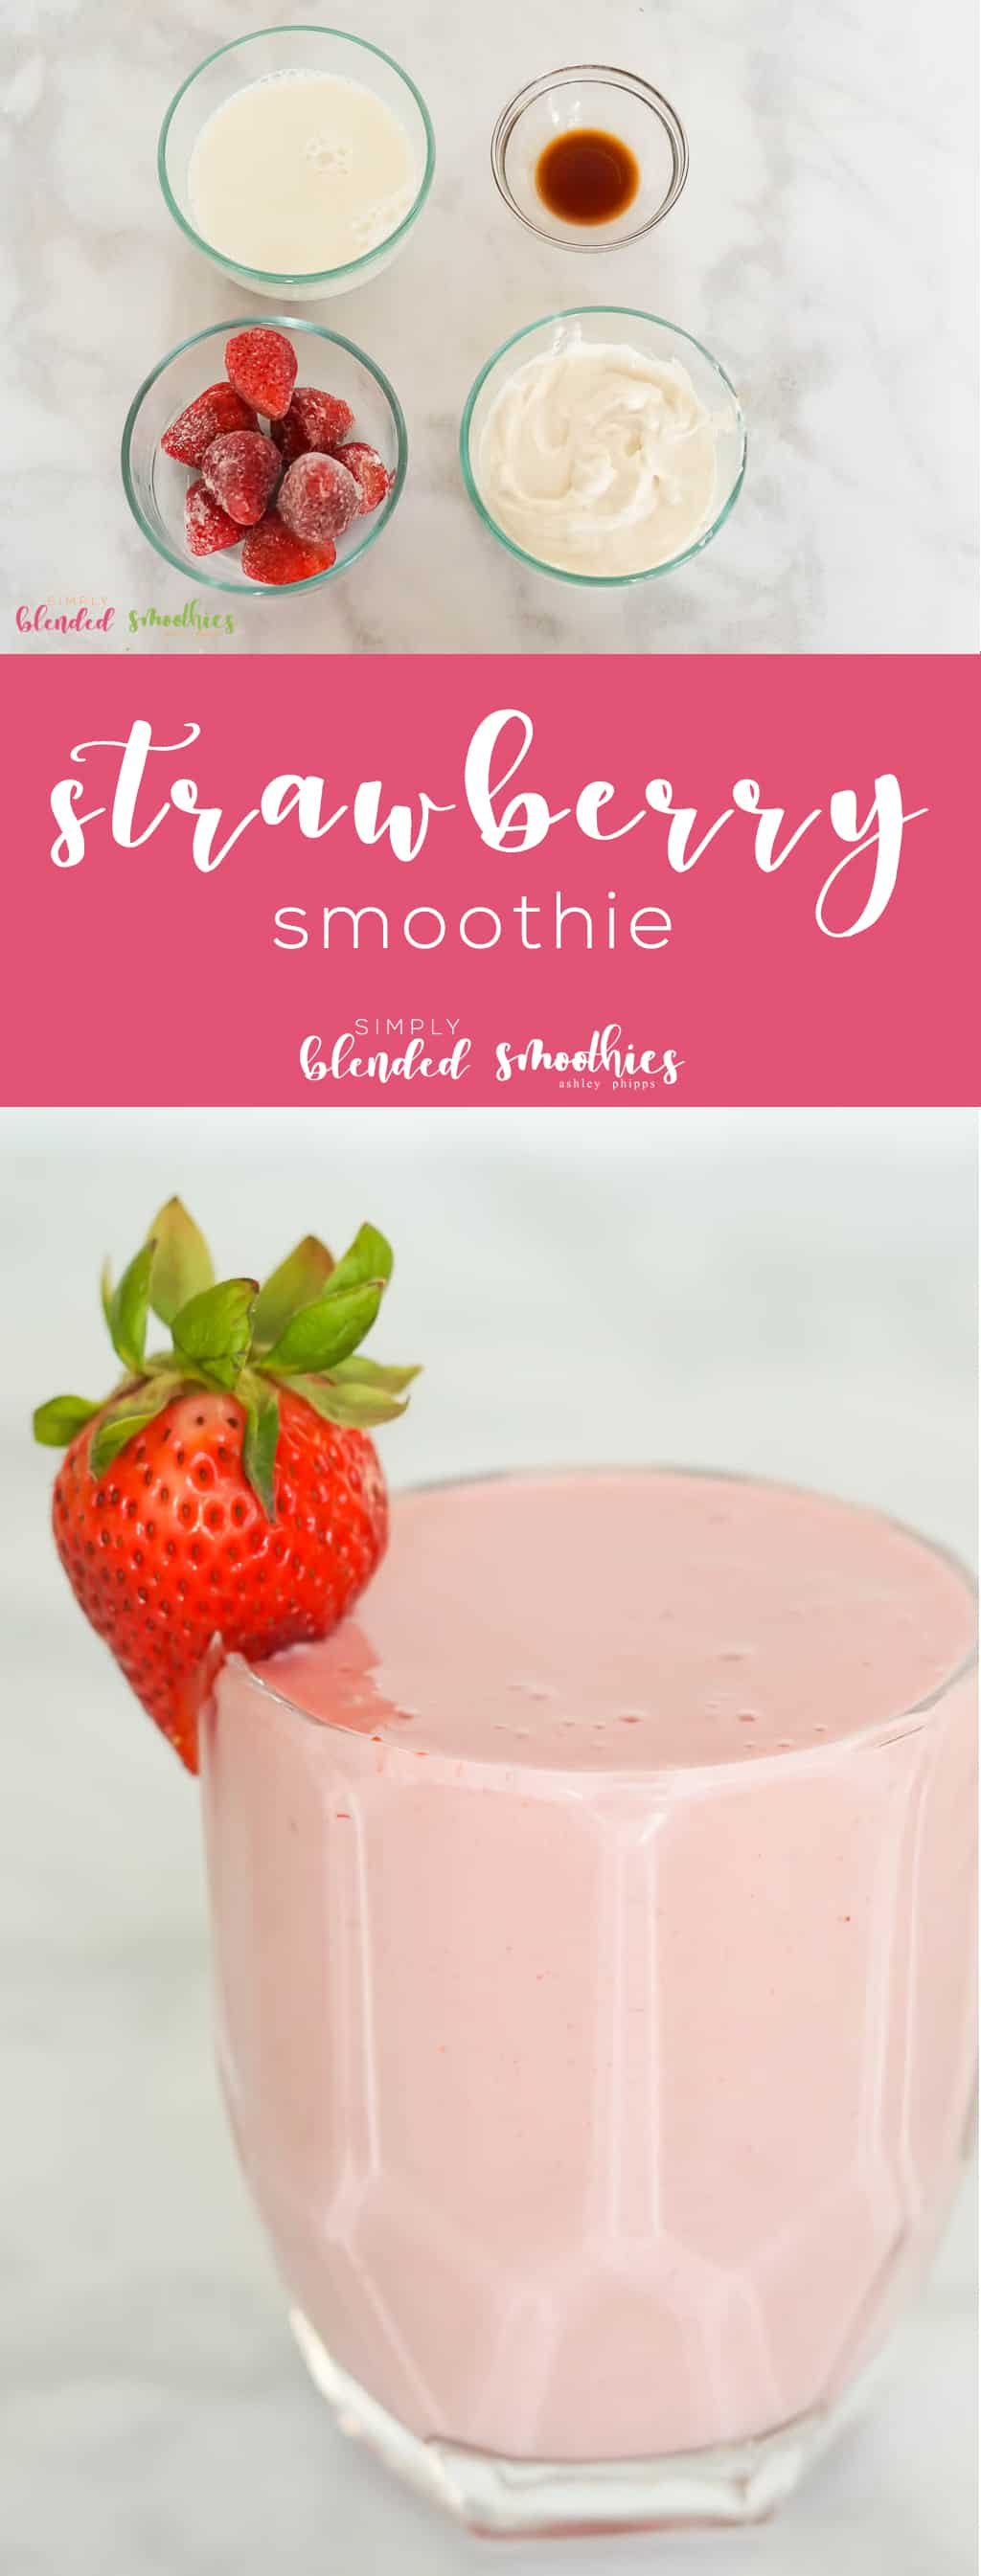 A delcious and healthy Strawberry Smoothie recipe that only takes 4 ingredients to make